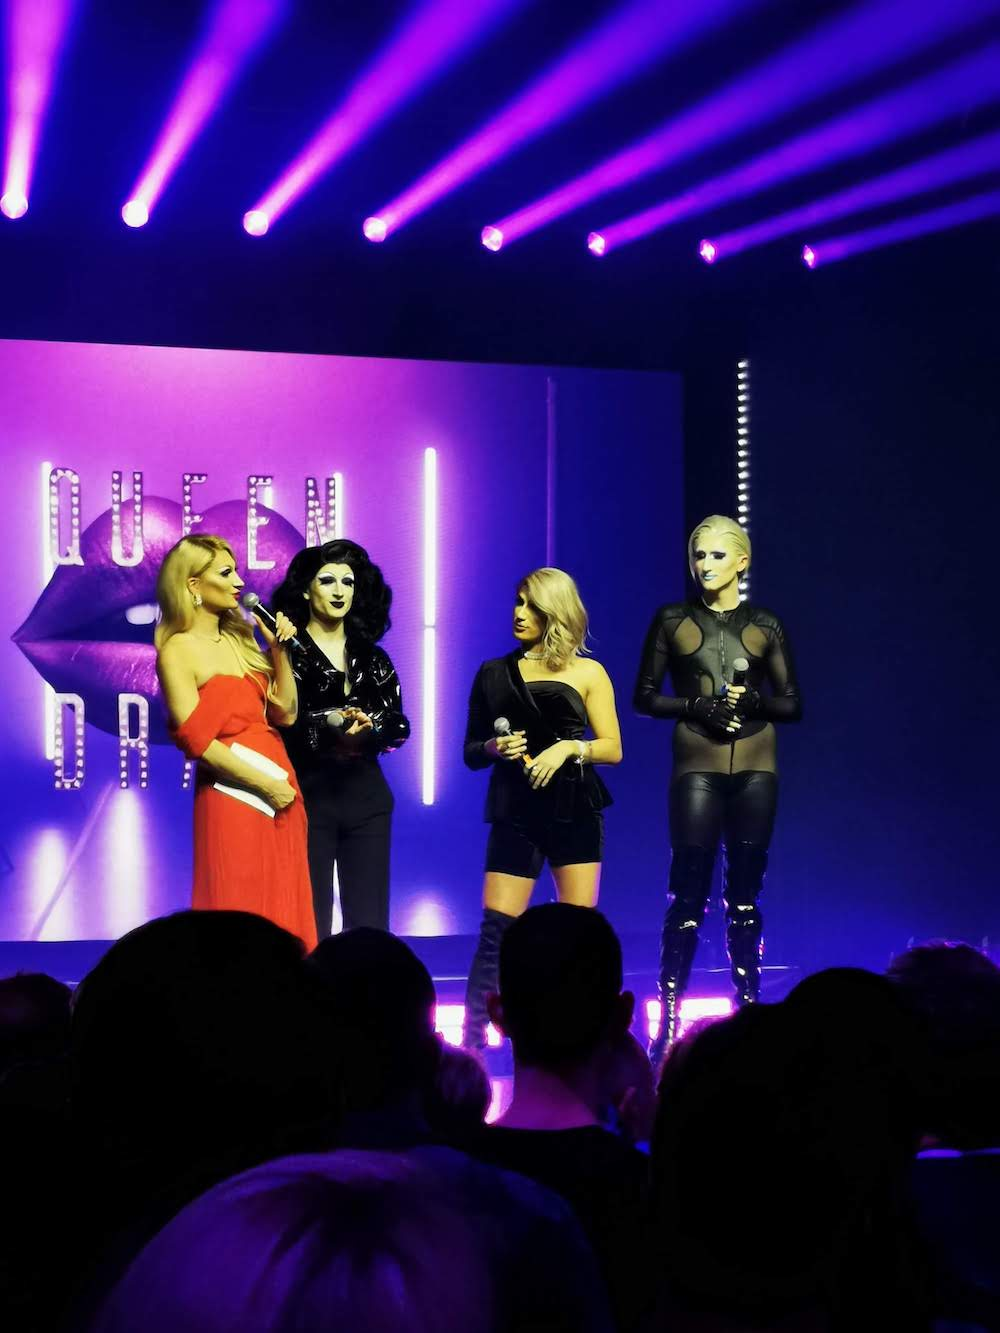 Queen of Drags: Candy Crash interviewt Aria Adams, Yoncé Banks und Vava Vilde.